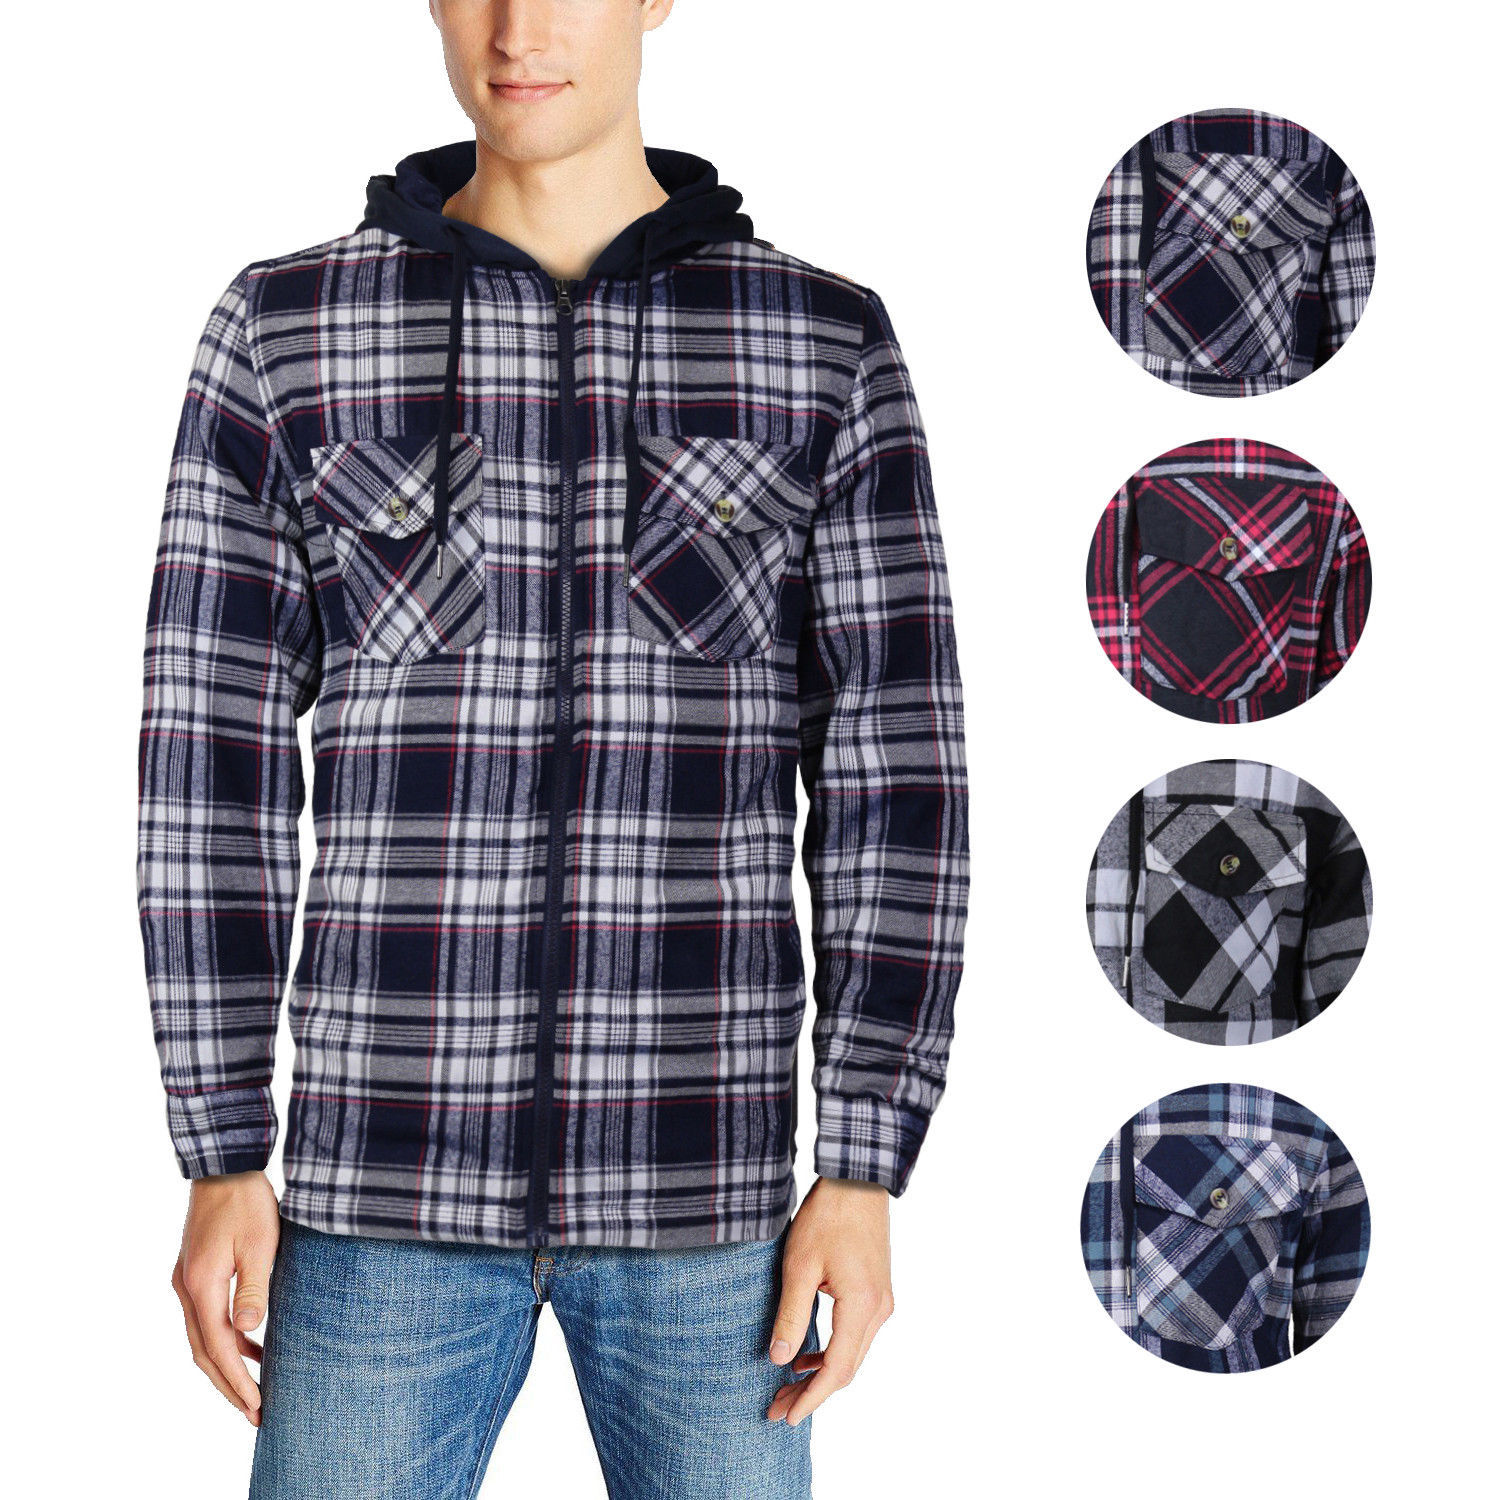 U.S. Life Men's Zip Up Plaid Checkered Quilted Flannel Sweater Hoodie Jacket